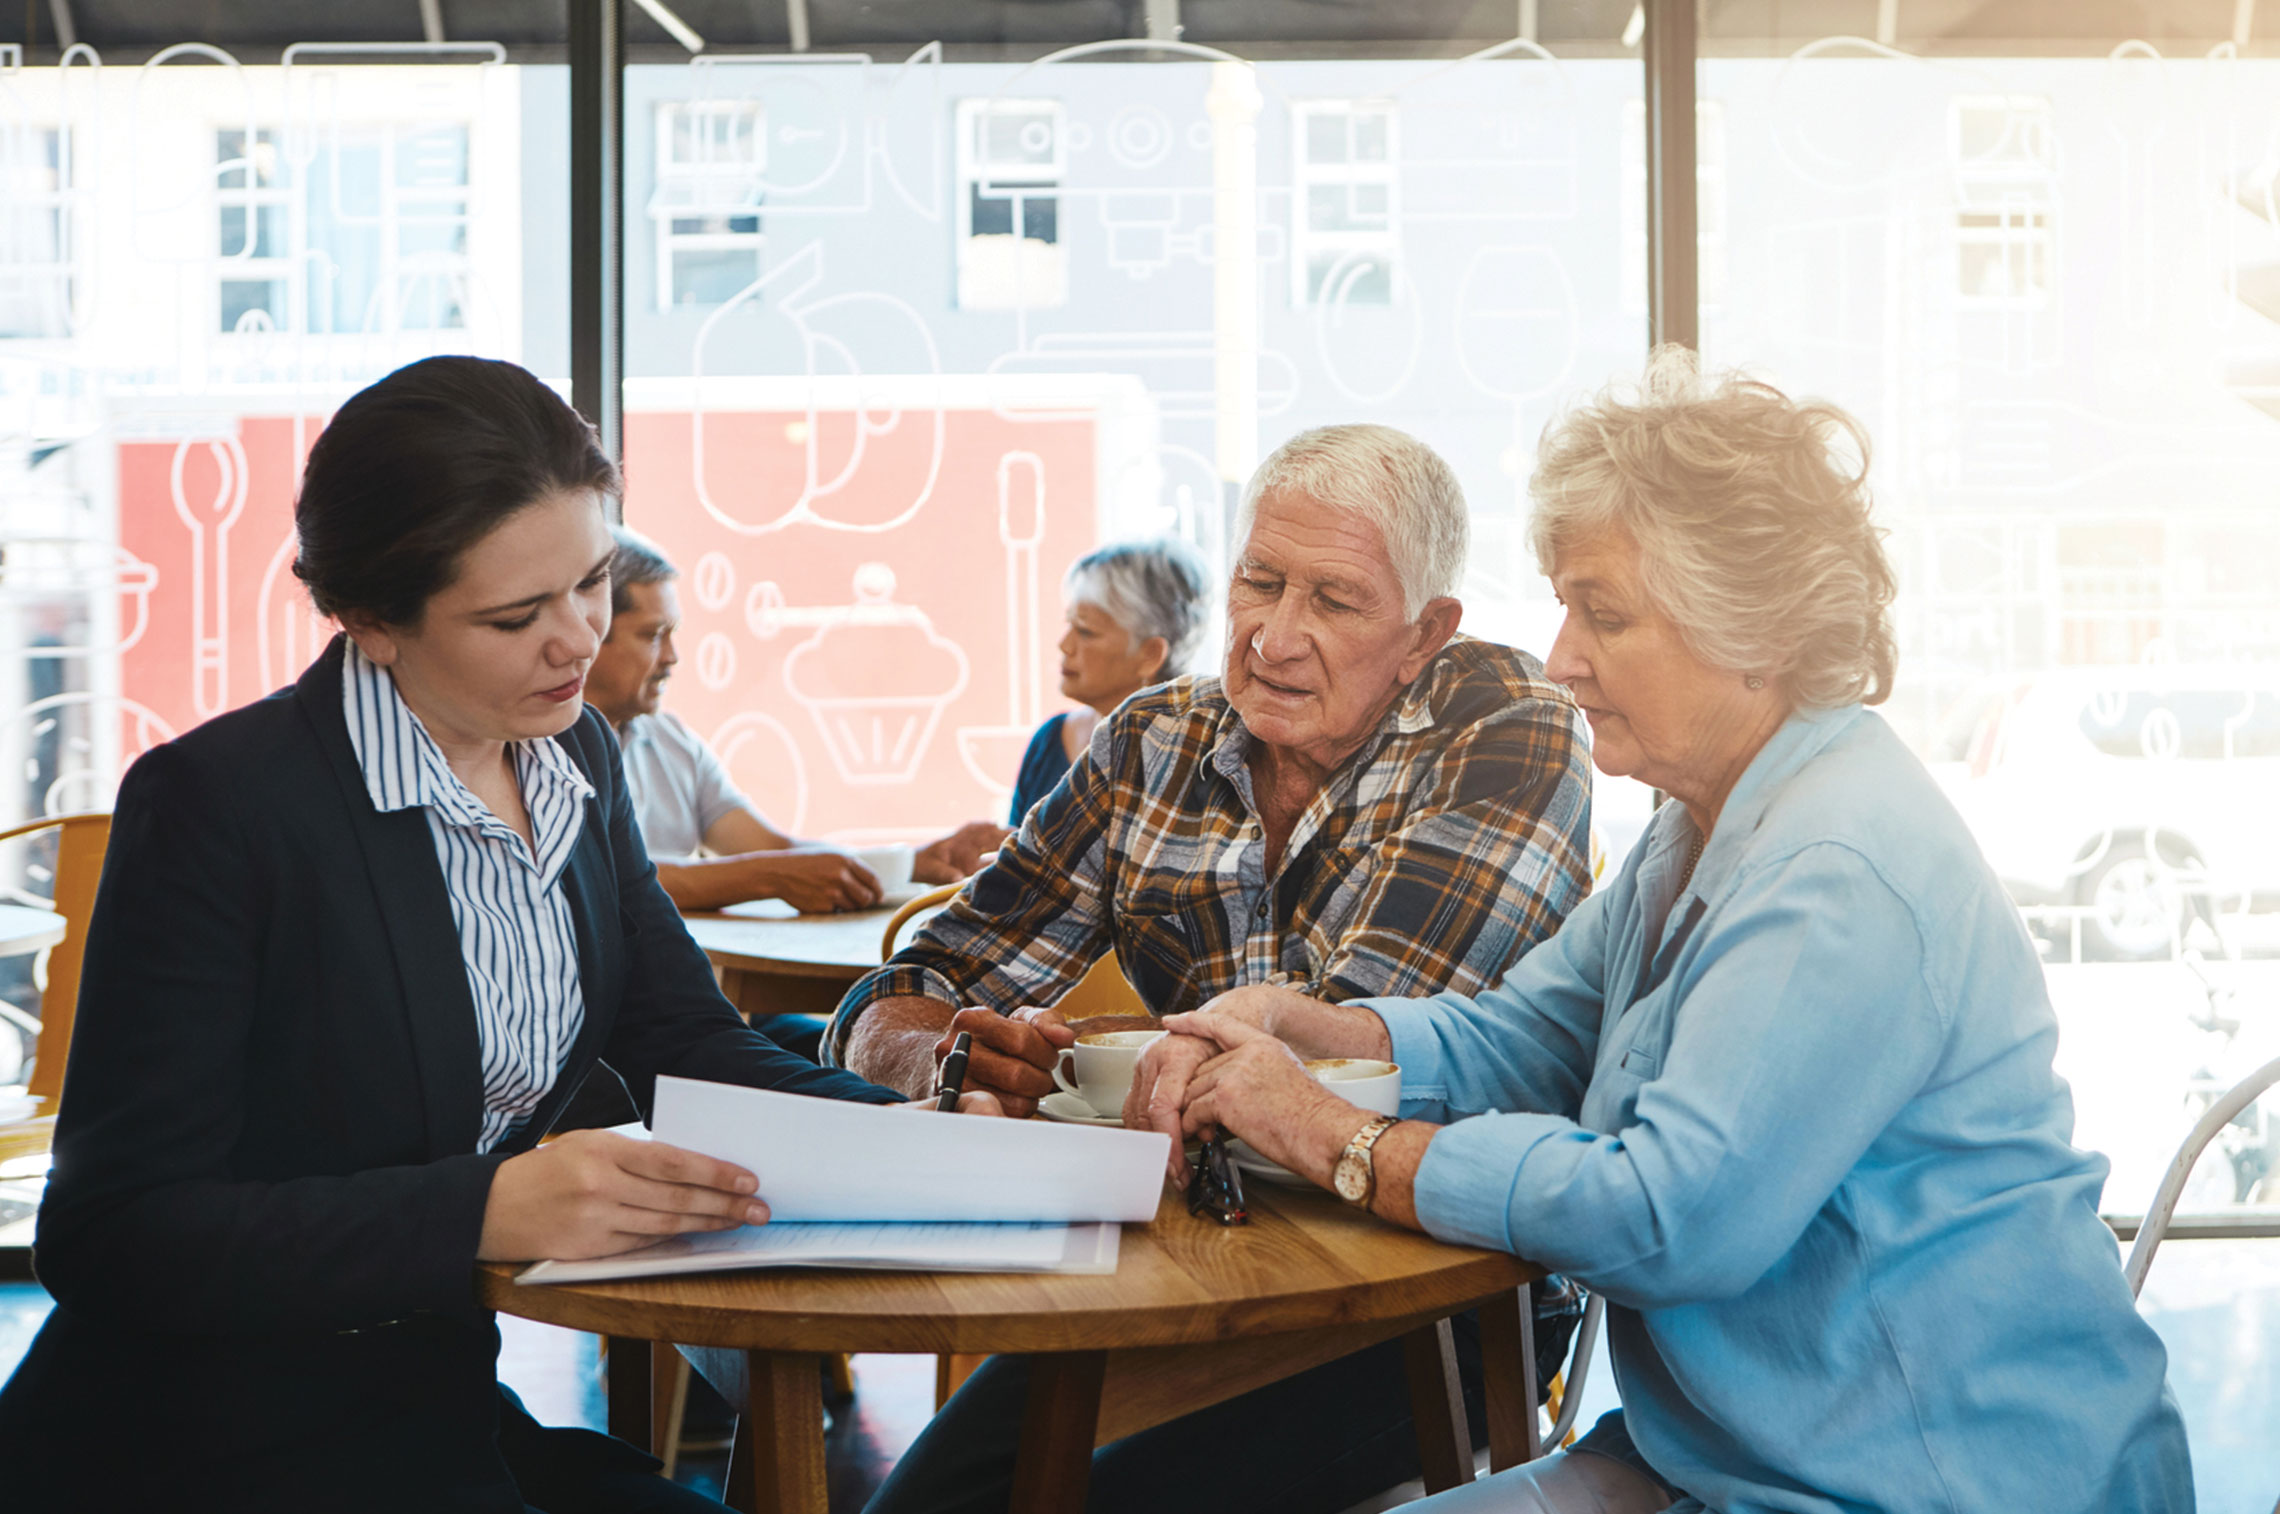 Some Challenges Executors Can Face During Estate Administration